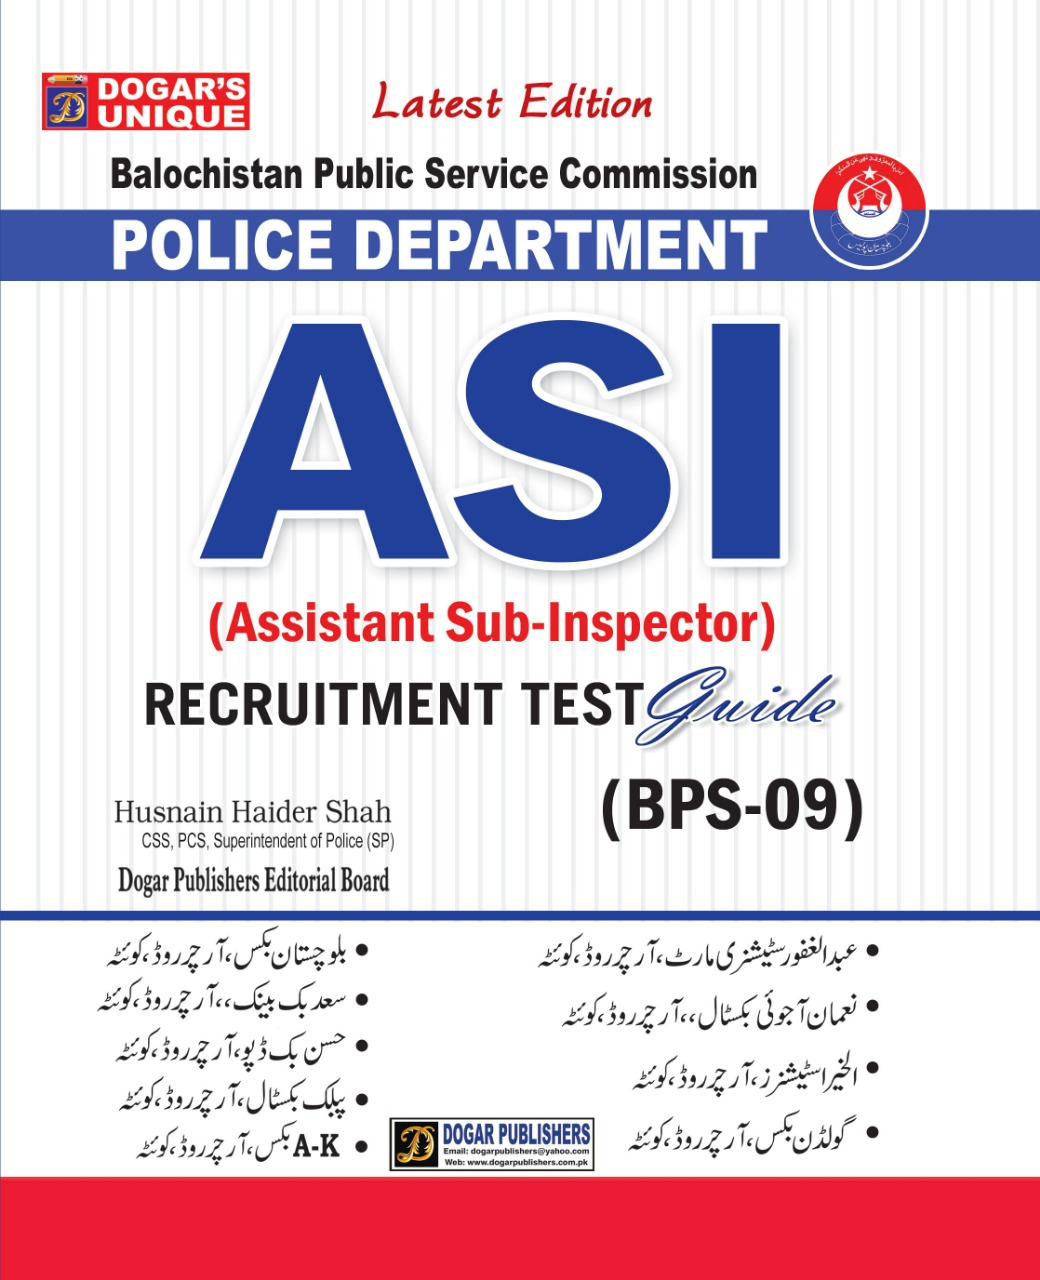 BPSC Police Department ASI Recruitment test Guide (BPS-09)